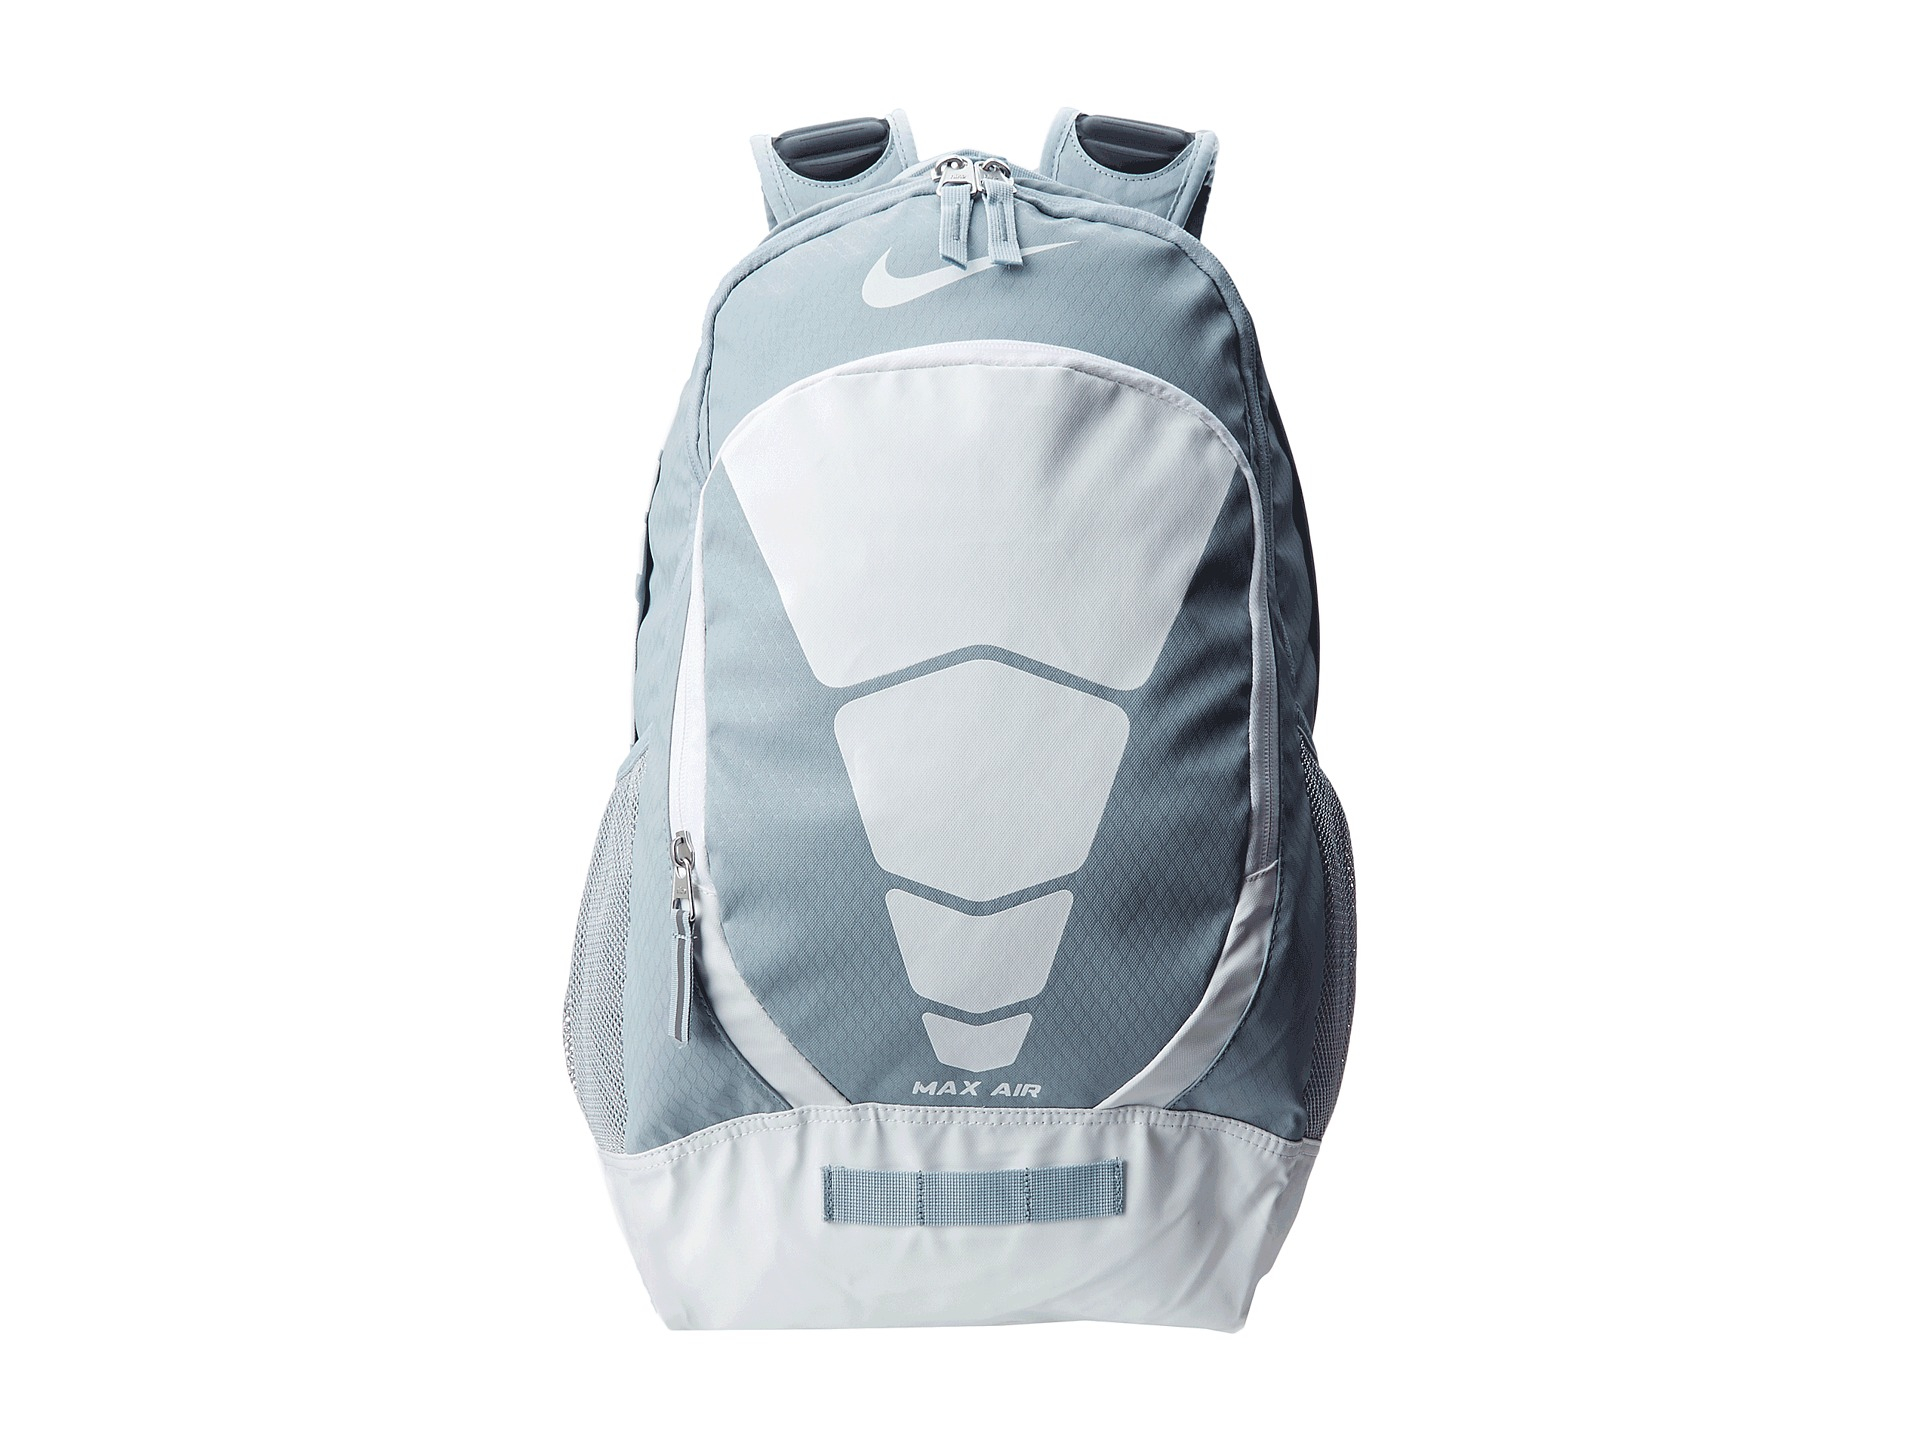 f01aa726acd Lyst - Nike Max Air Vapor Backpack in Gray